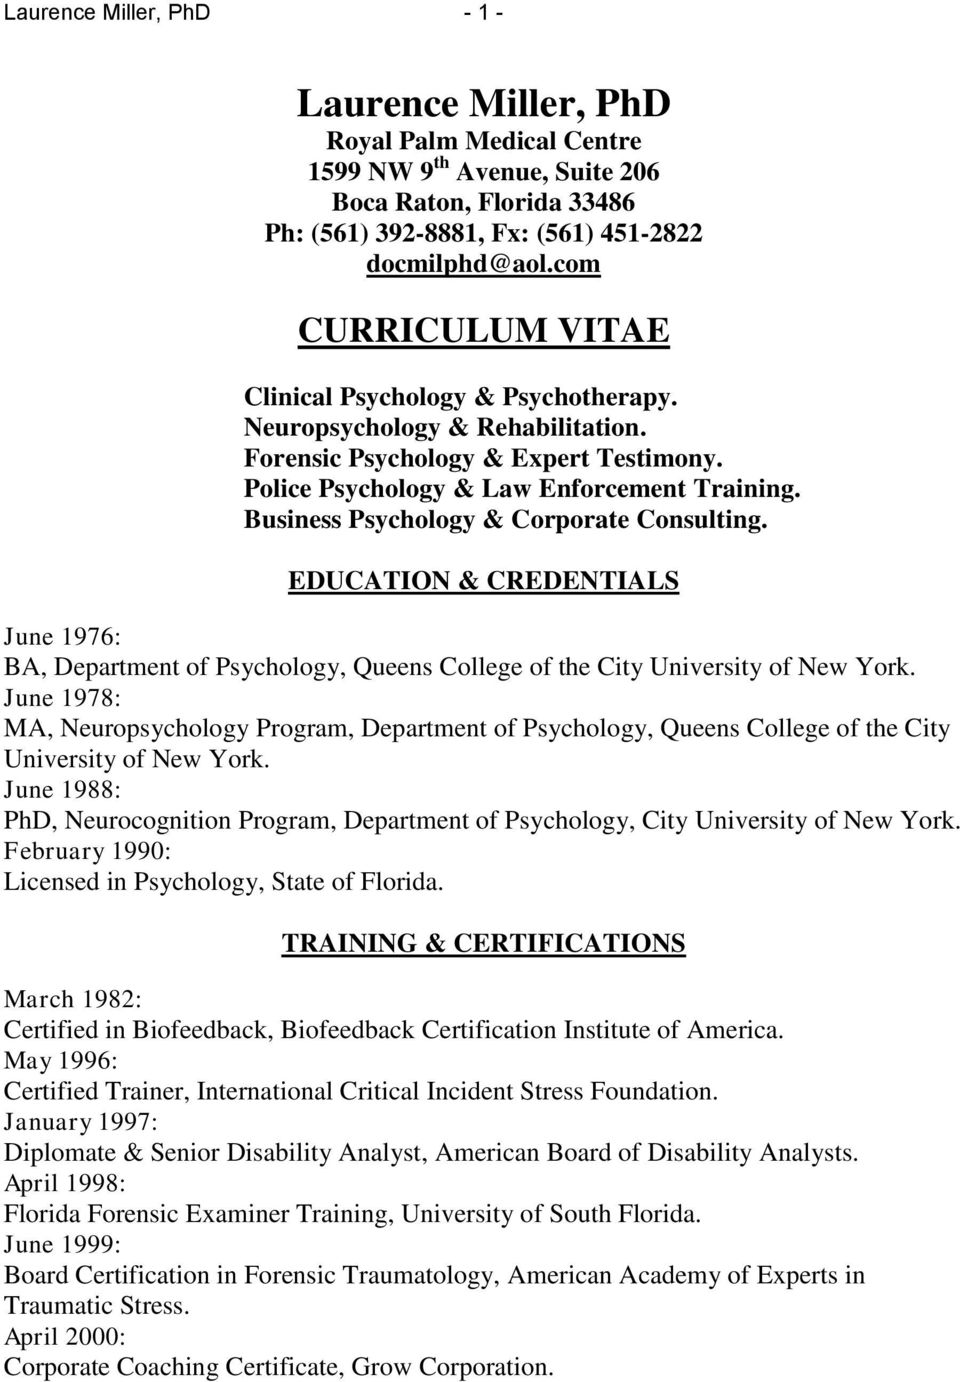 Business Psychology & Corporate Consulting. EDUCATION & CREDENTIALS June 1976: BA, Department of Psychology, Queens College of the City University of New York.